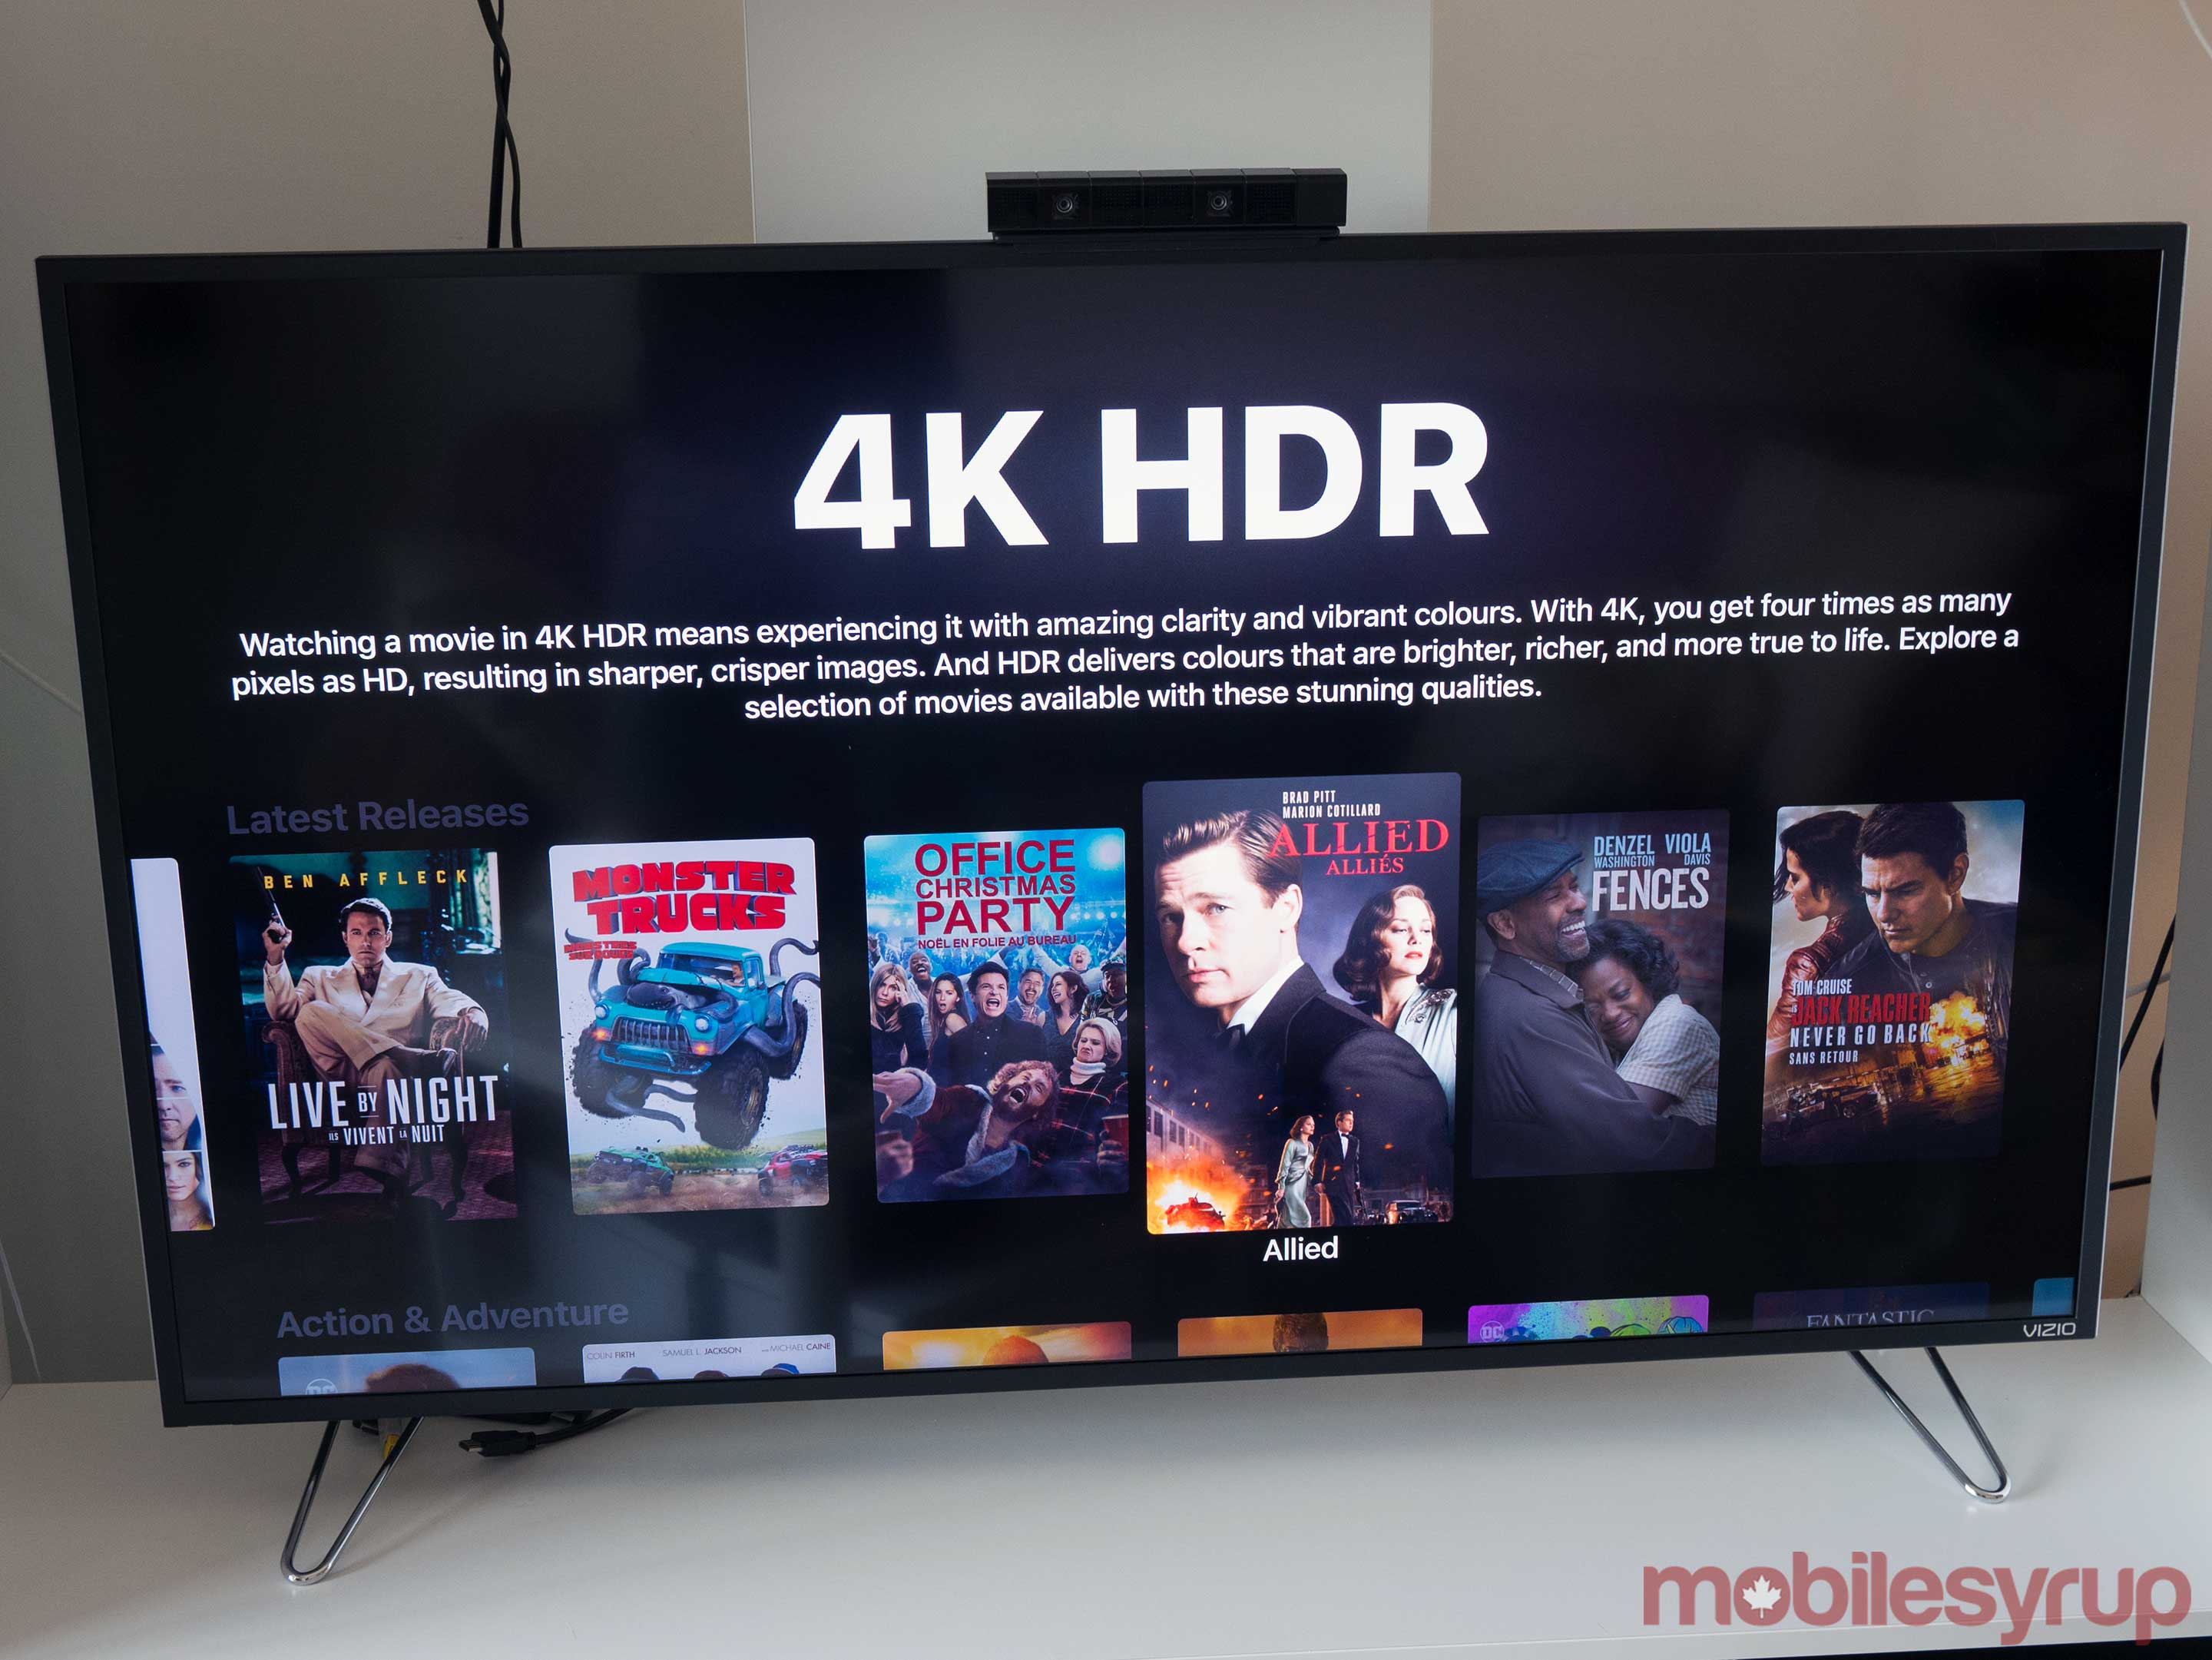 apple tv 4k review steps to a 4k hdr future. Black Bedroom Furniture Sets. Home Design Ideas